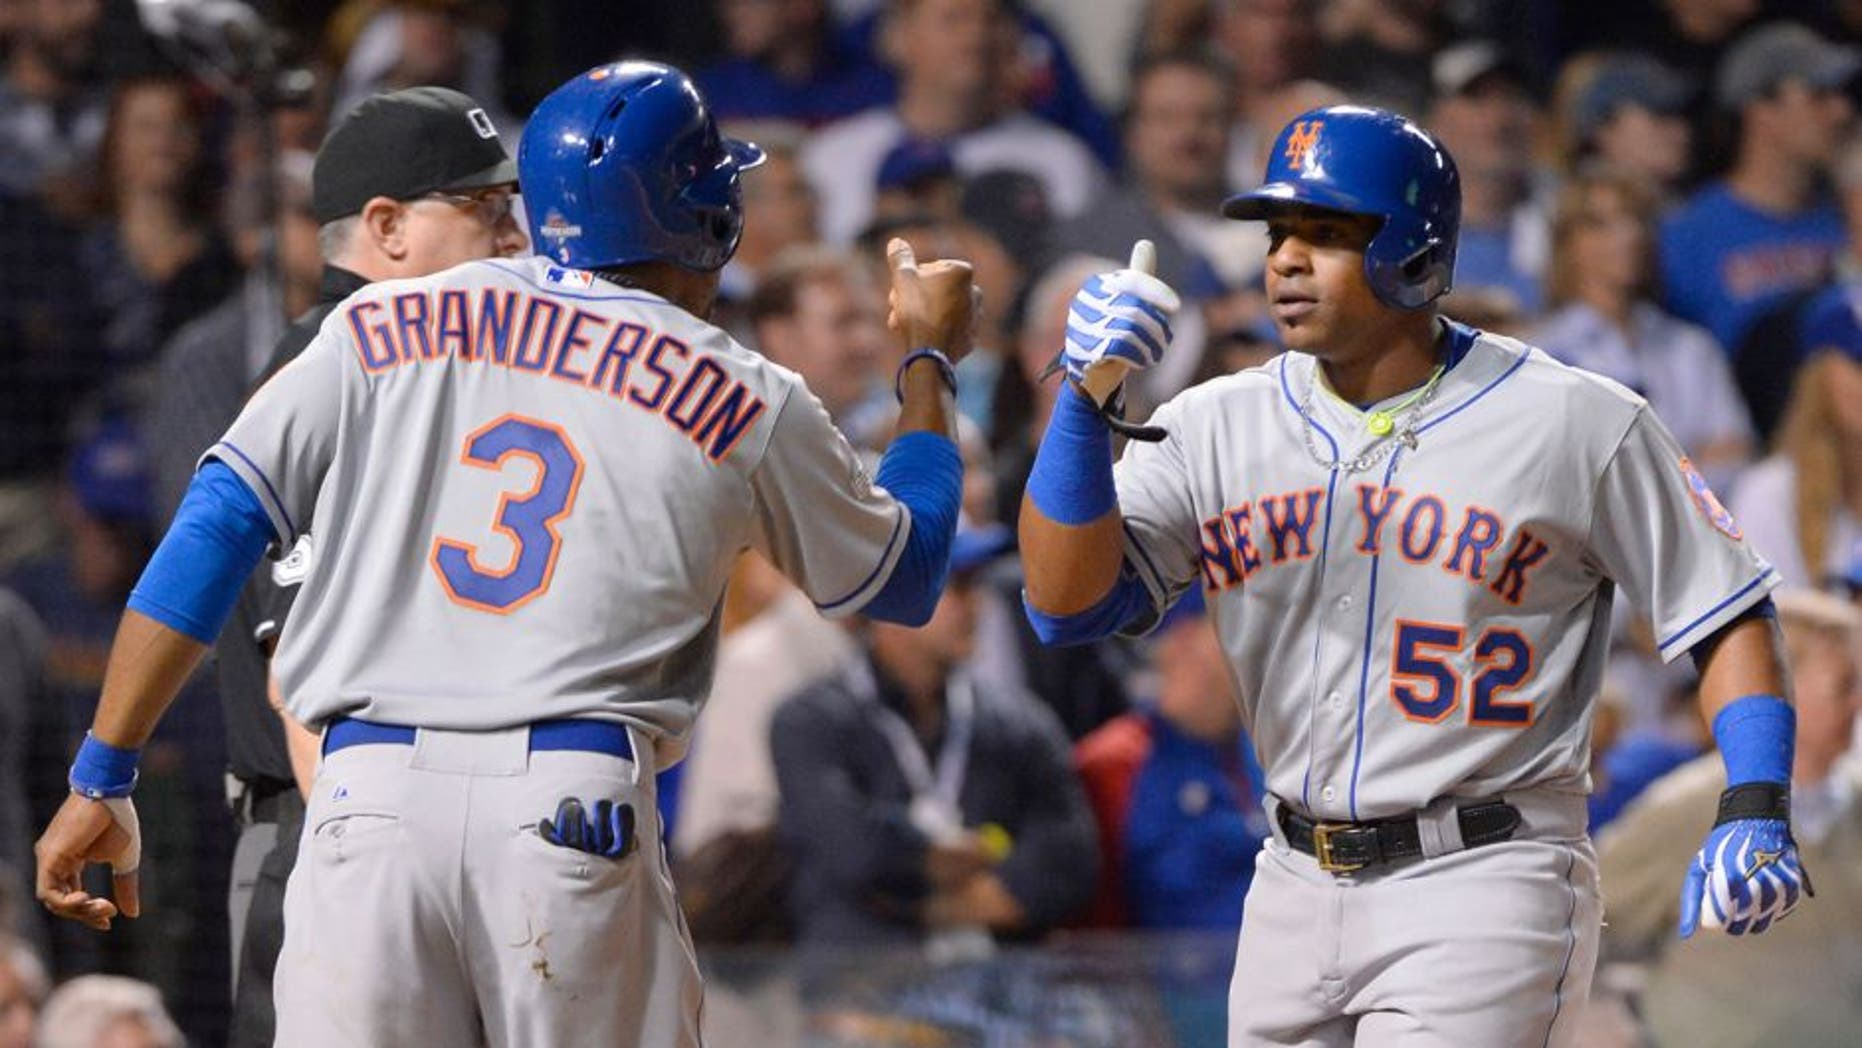 CHICAGO, IL - OCTOBER 21: Curtis Granderson #3 of the New York Mets and teammate Yoenis Cespedes #52 score on Lucas Duda's three-run home run in the top of the first inning of Game 4 of the NLCS against the Chicago Cubs at Wrigley Field on Wednesday, October 21, 2015 in Chicago, Illinois. (Photo by Ron Vesely/MLB Photos via Getty Images)